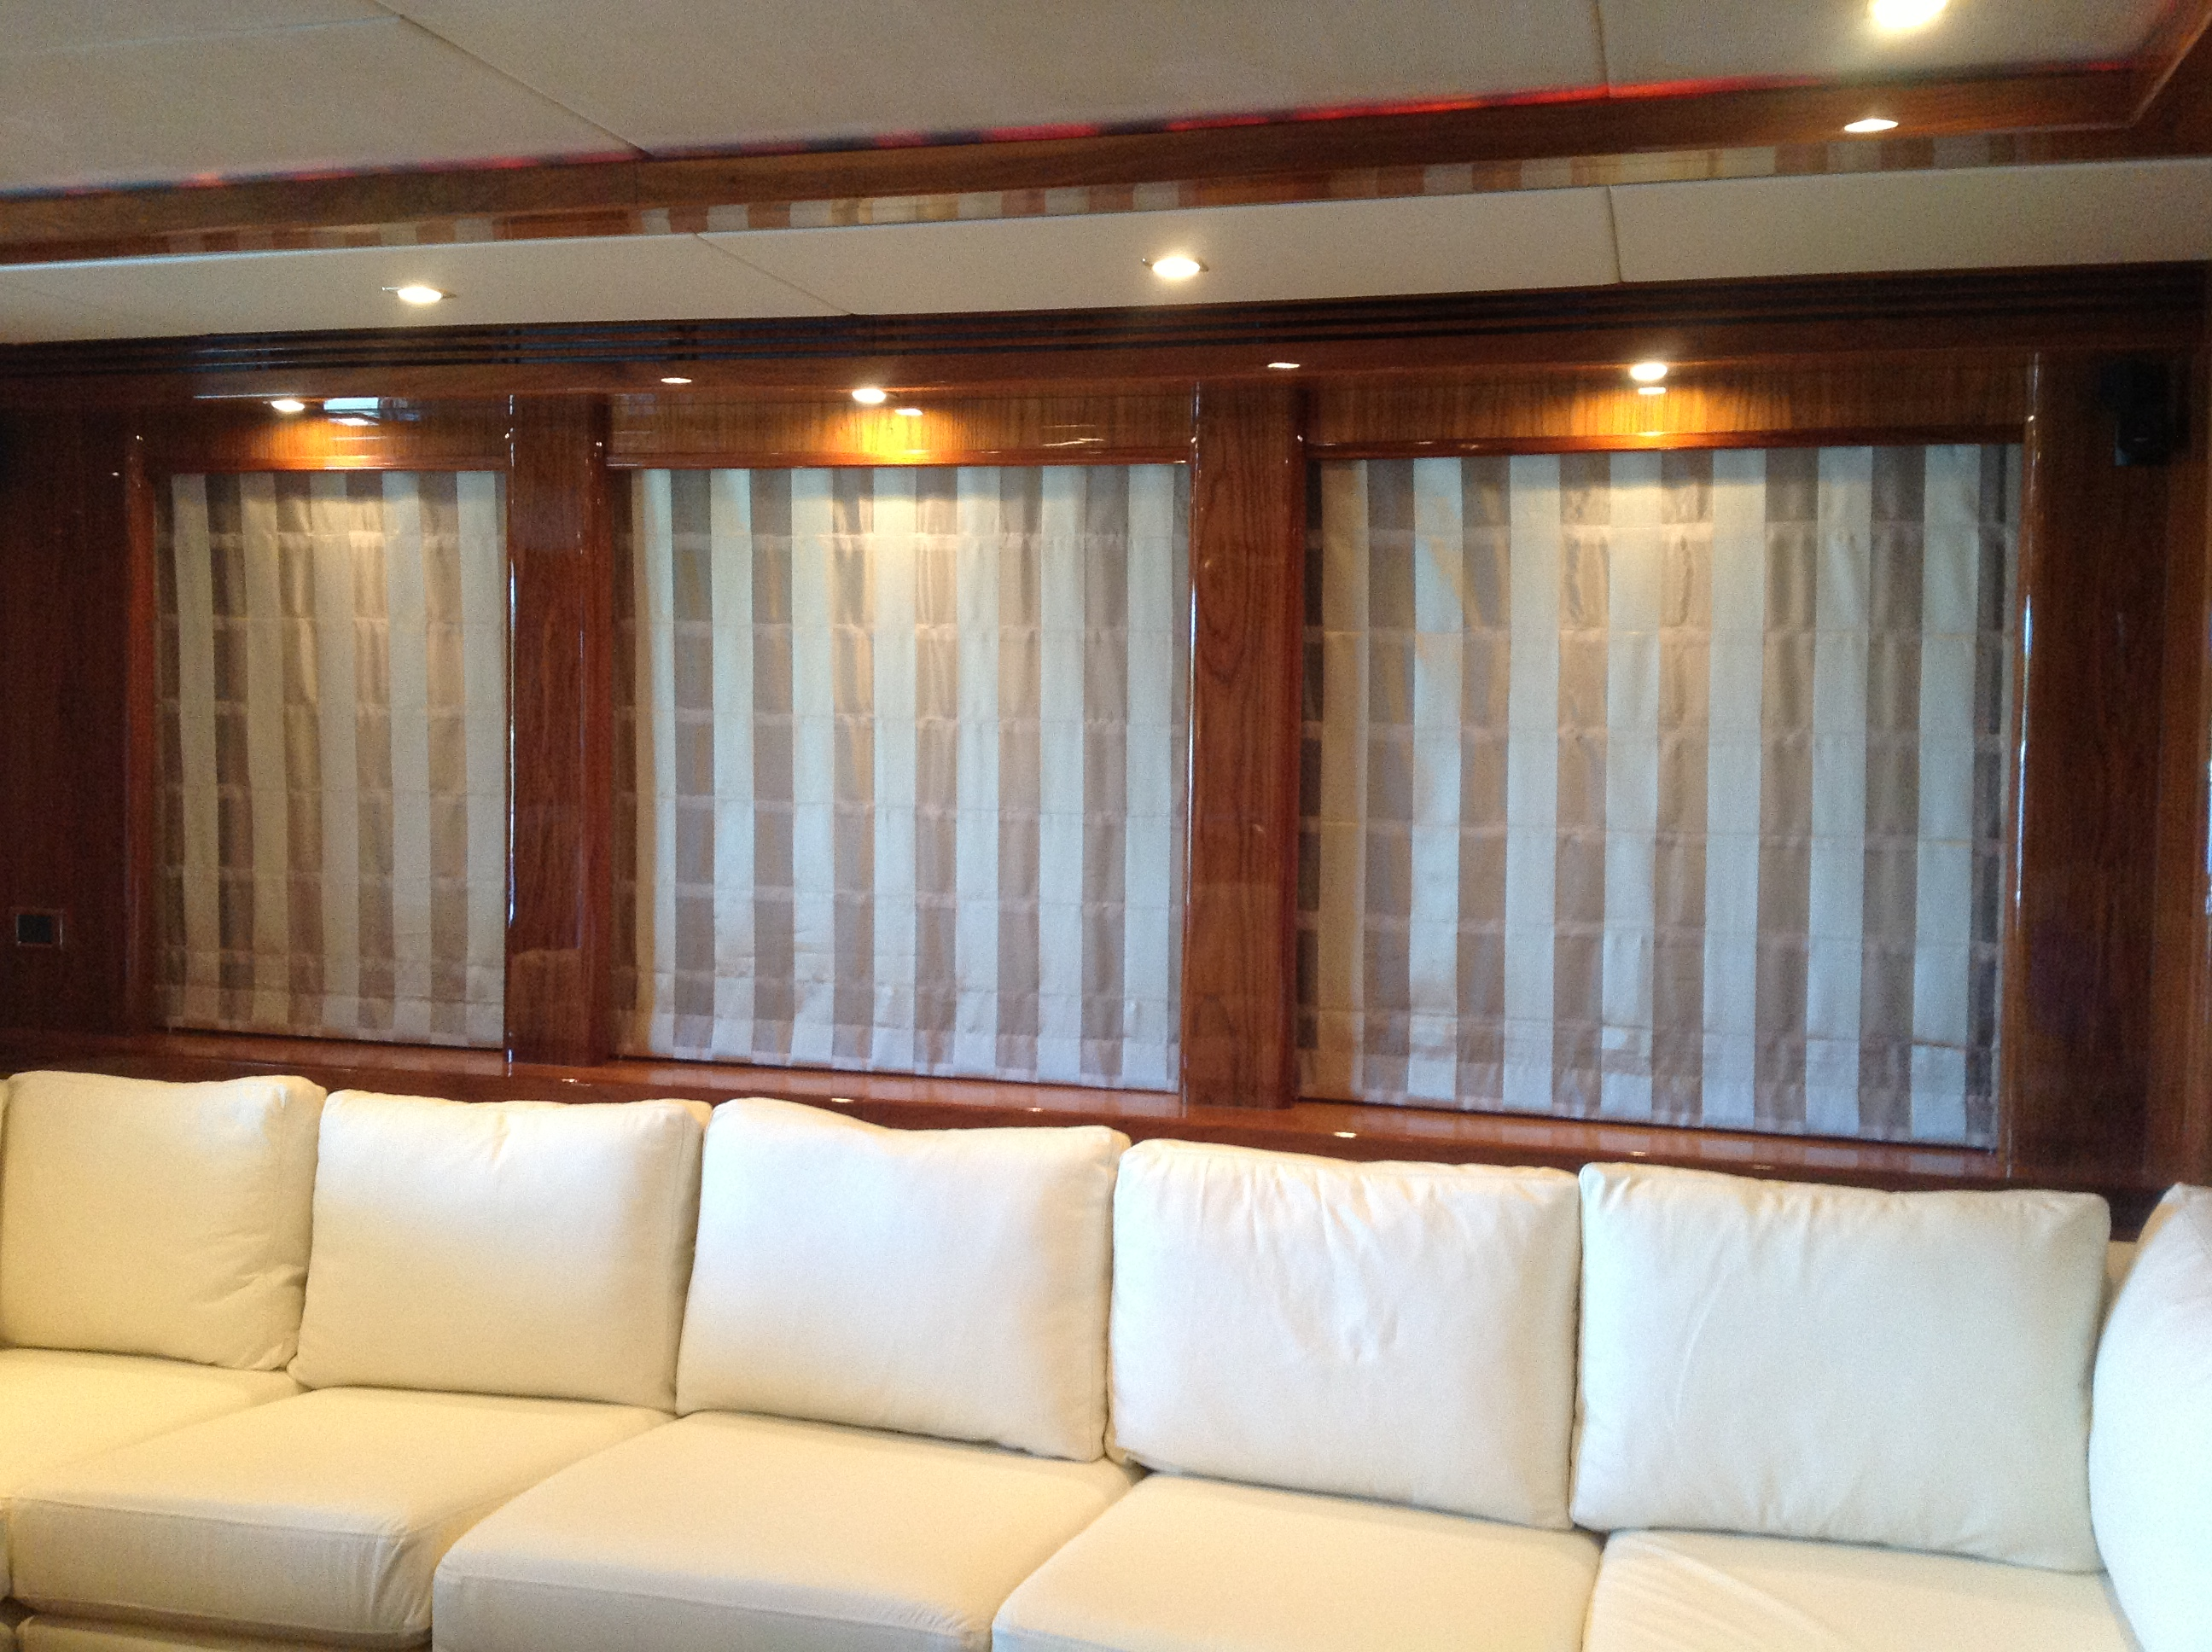 ambio lite shades down window zebra savalan in position and decor high automated open banded blinds img